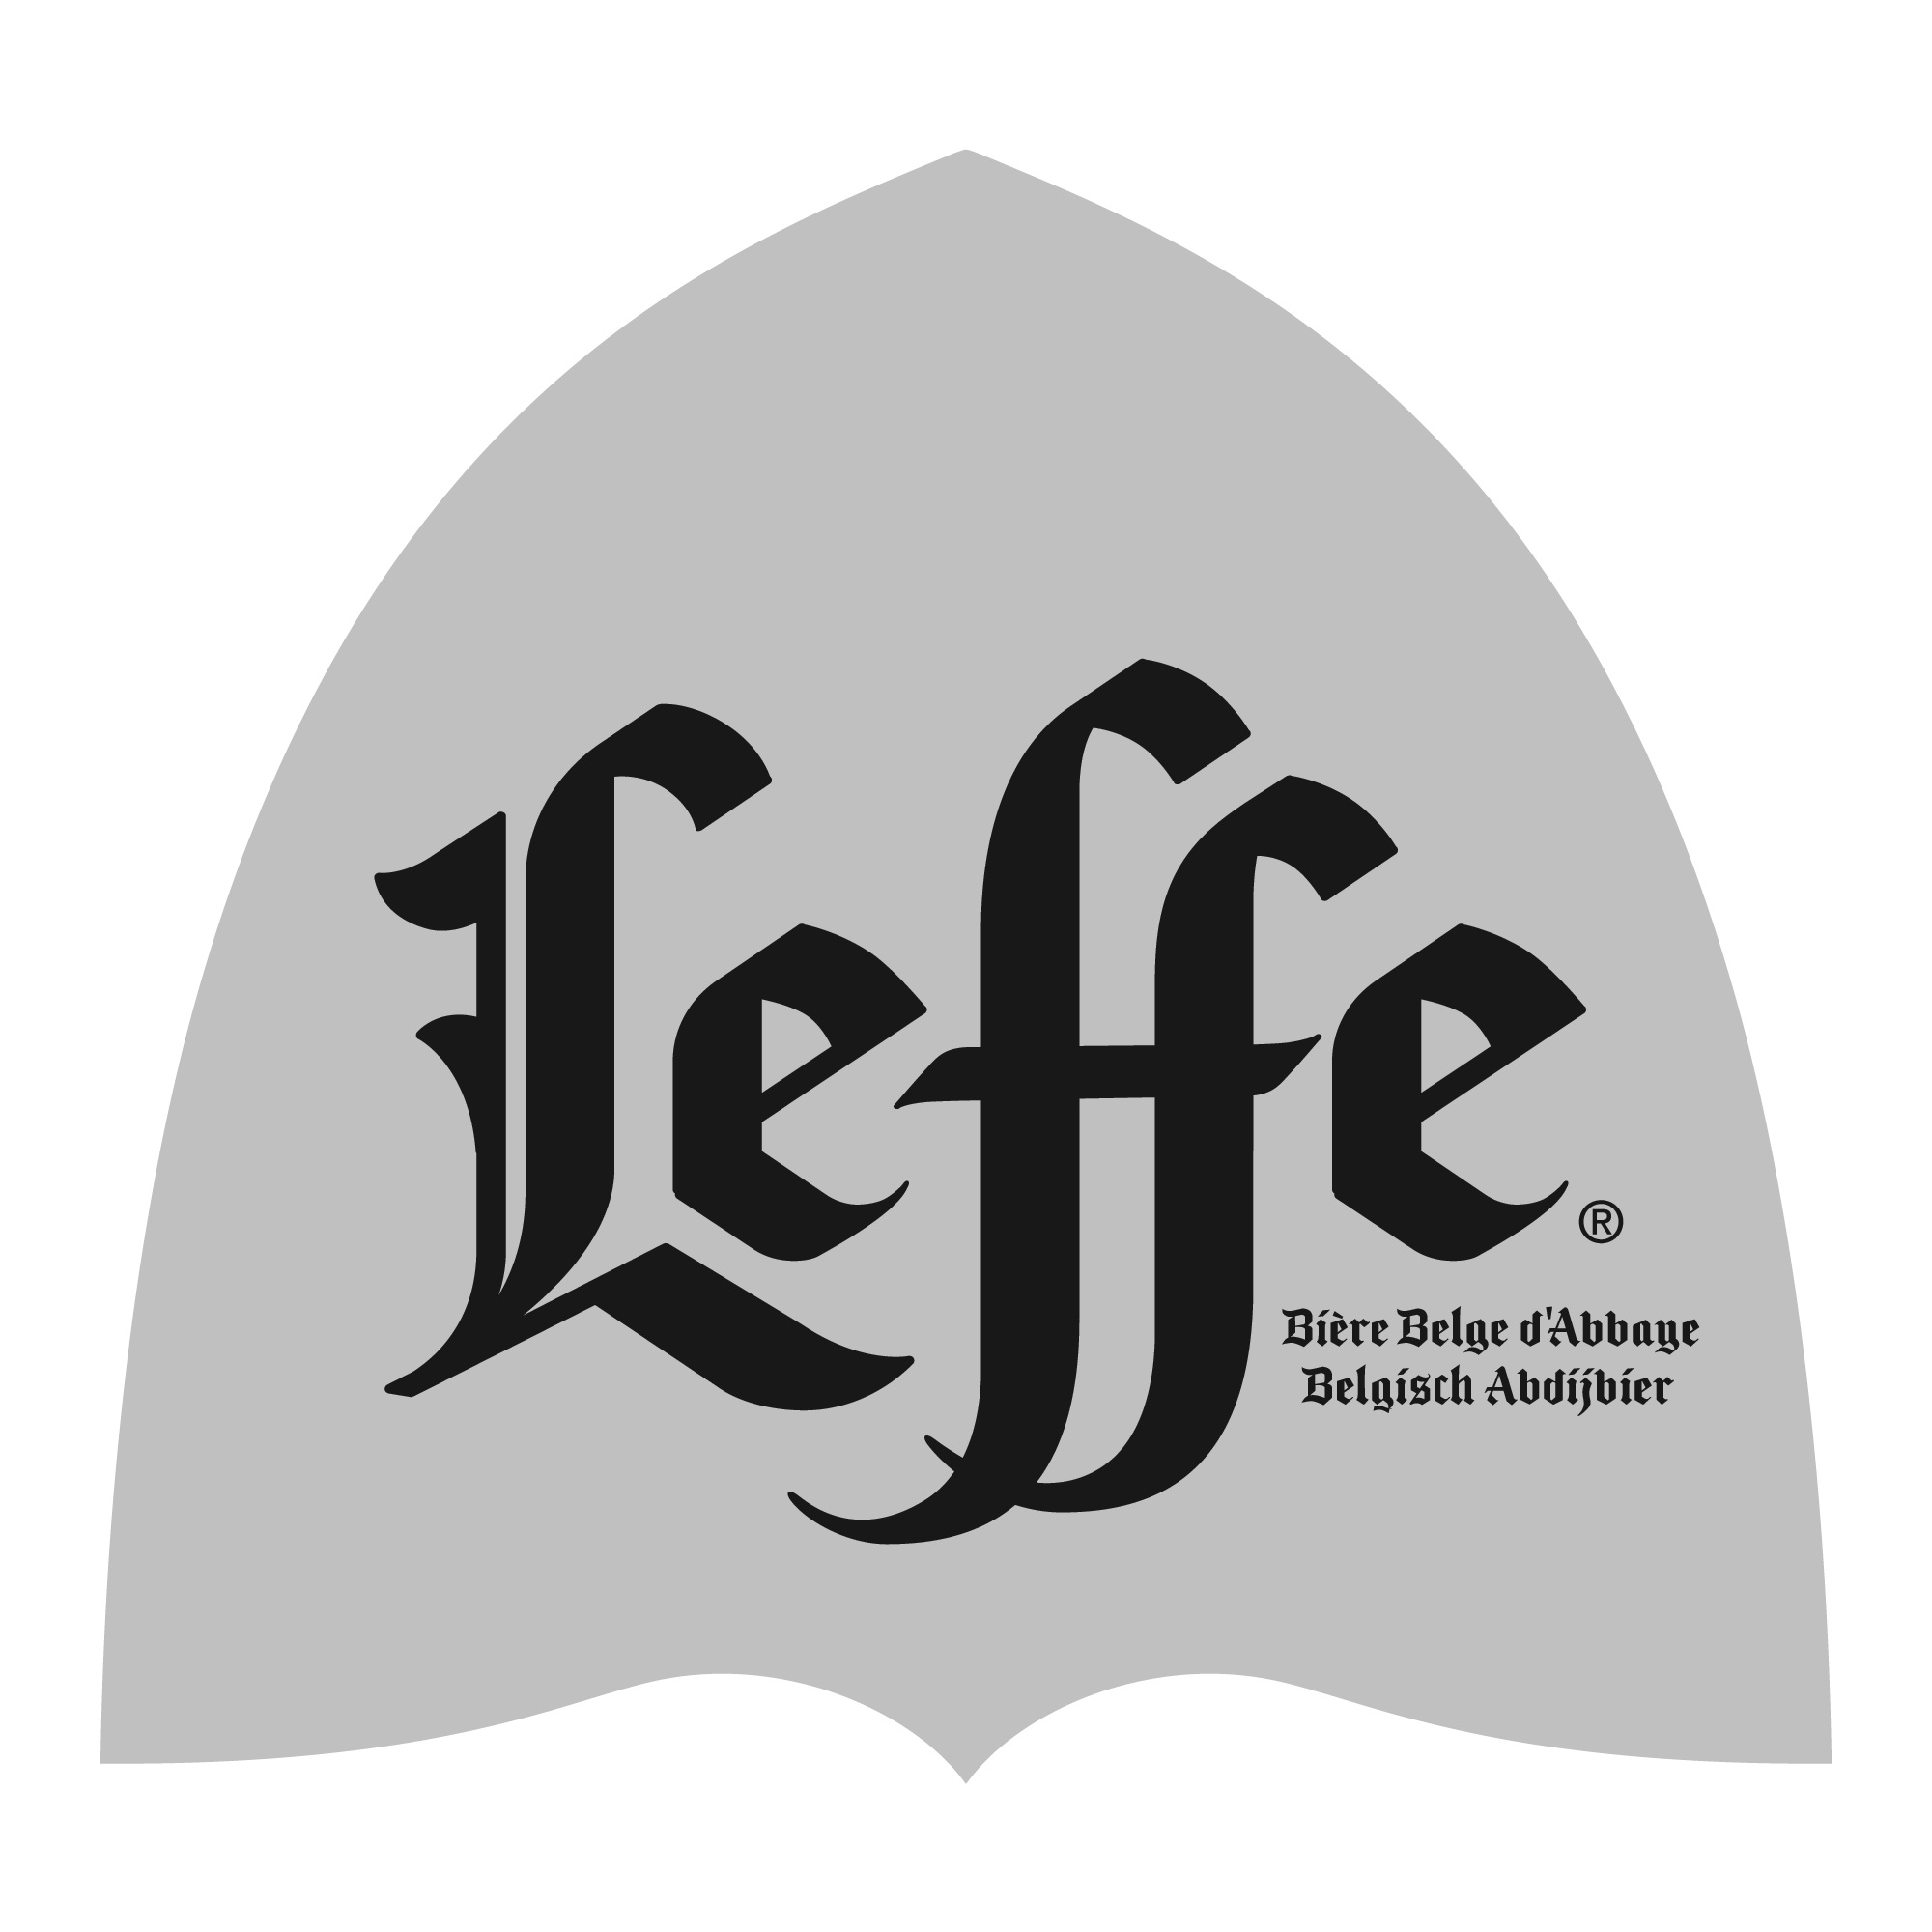 leffe-logo.png